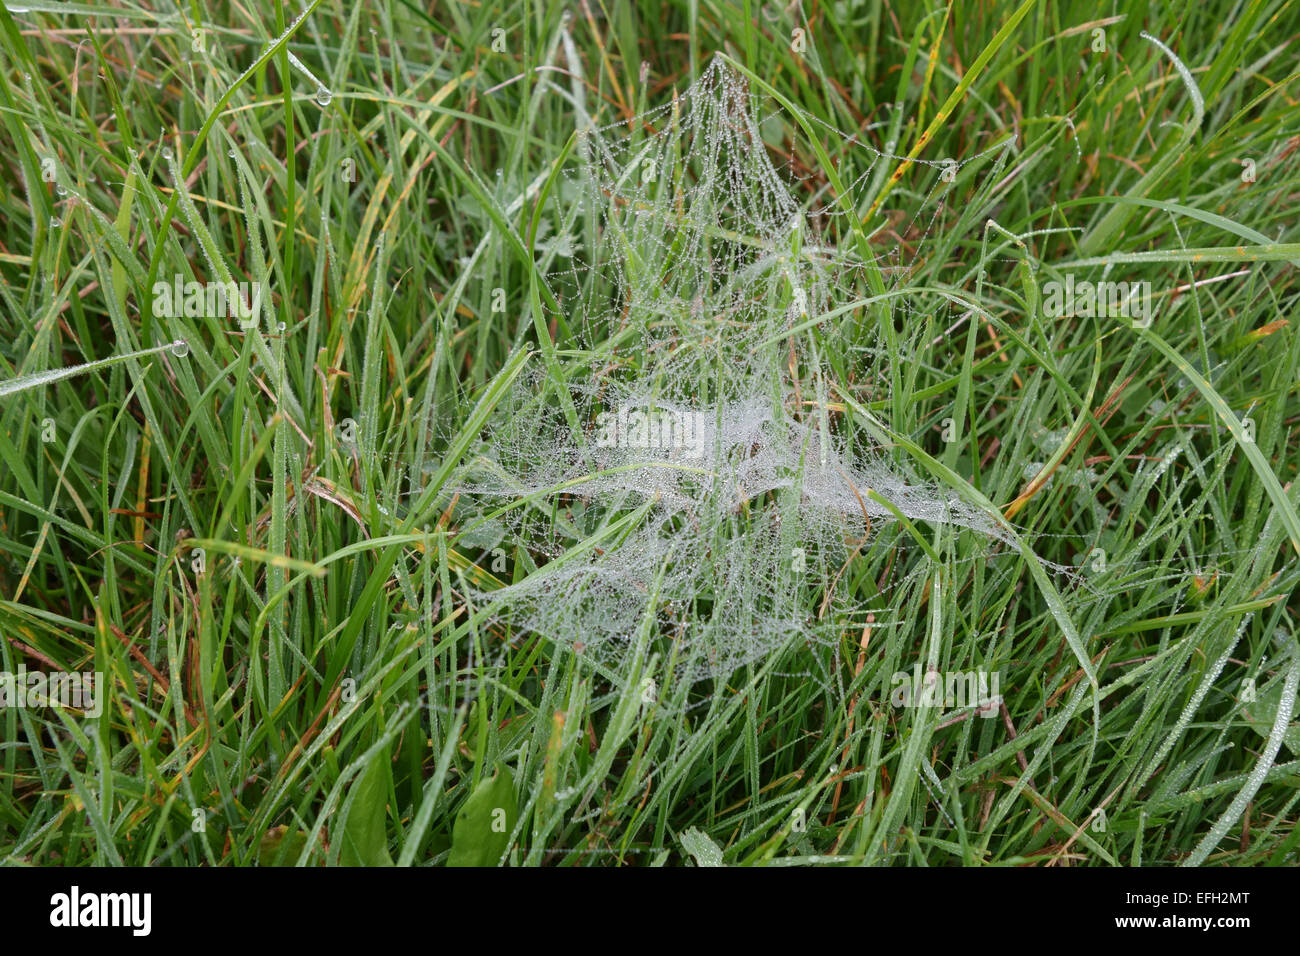 The web of a hunting spider, Lycosidae, with droplets of dew and built among the grass on a foggy autumn morning, - Stock Image